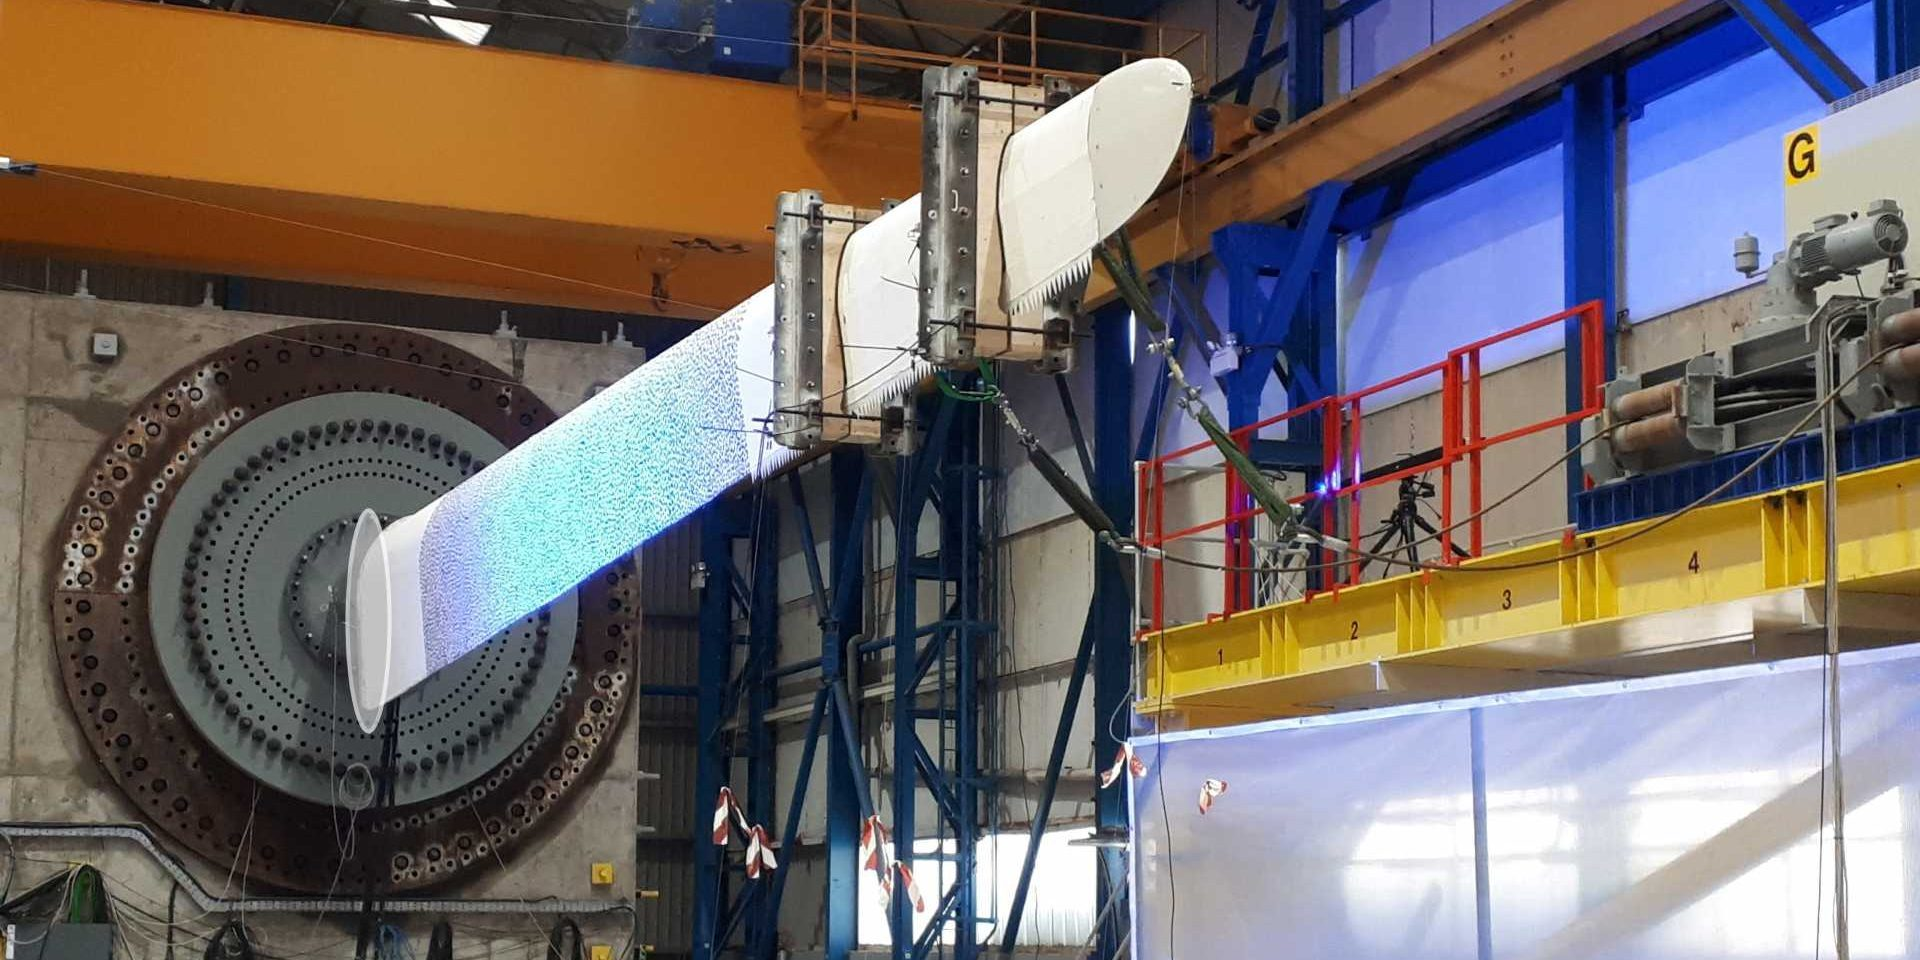 ACT Blade's innovative wind turbine blade design undergoing testing by ORE Catapult.